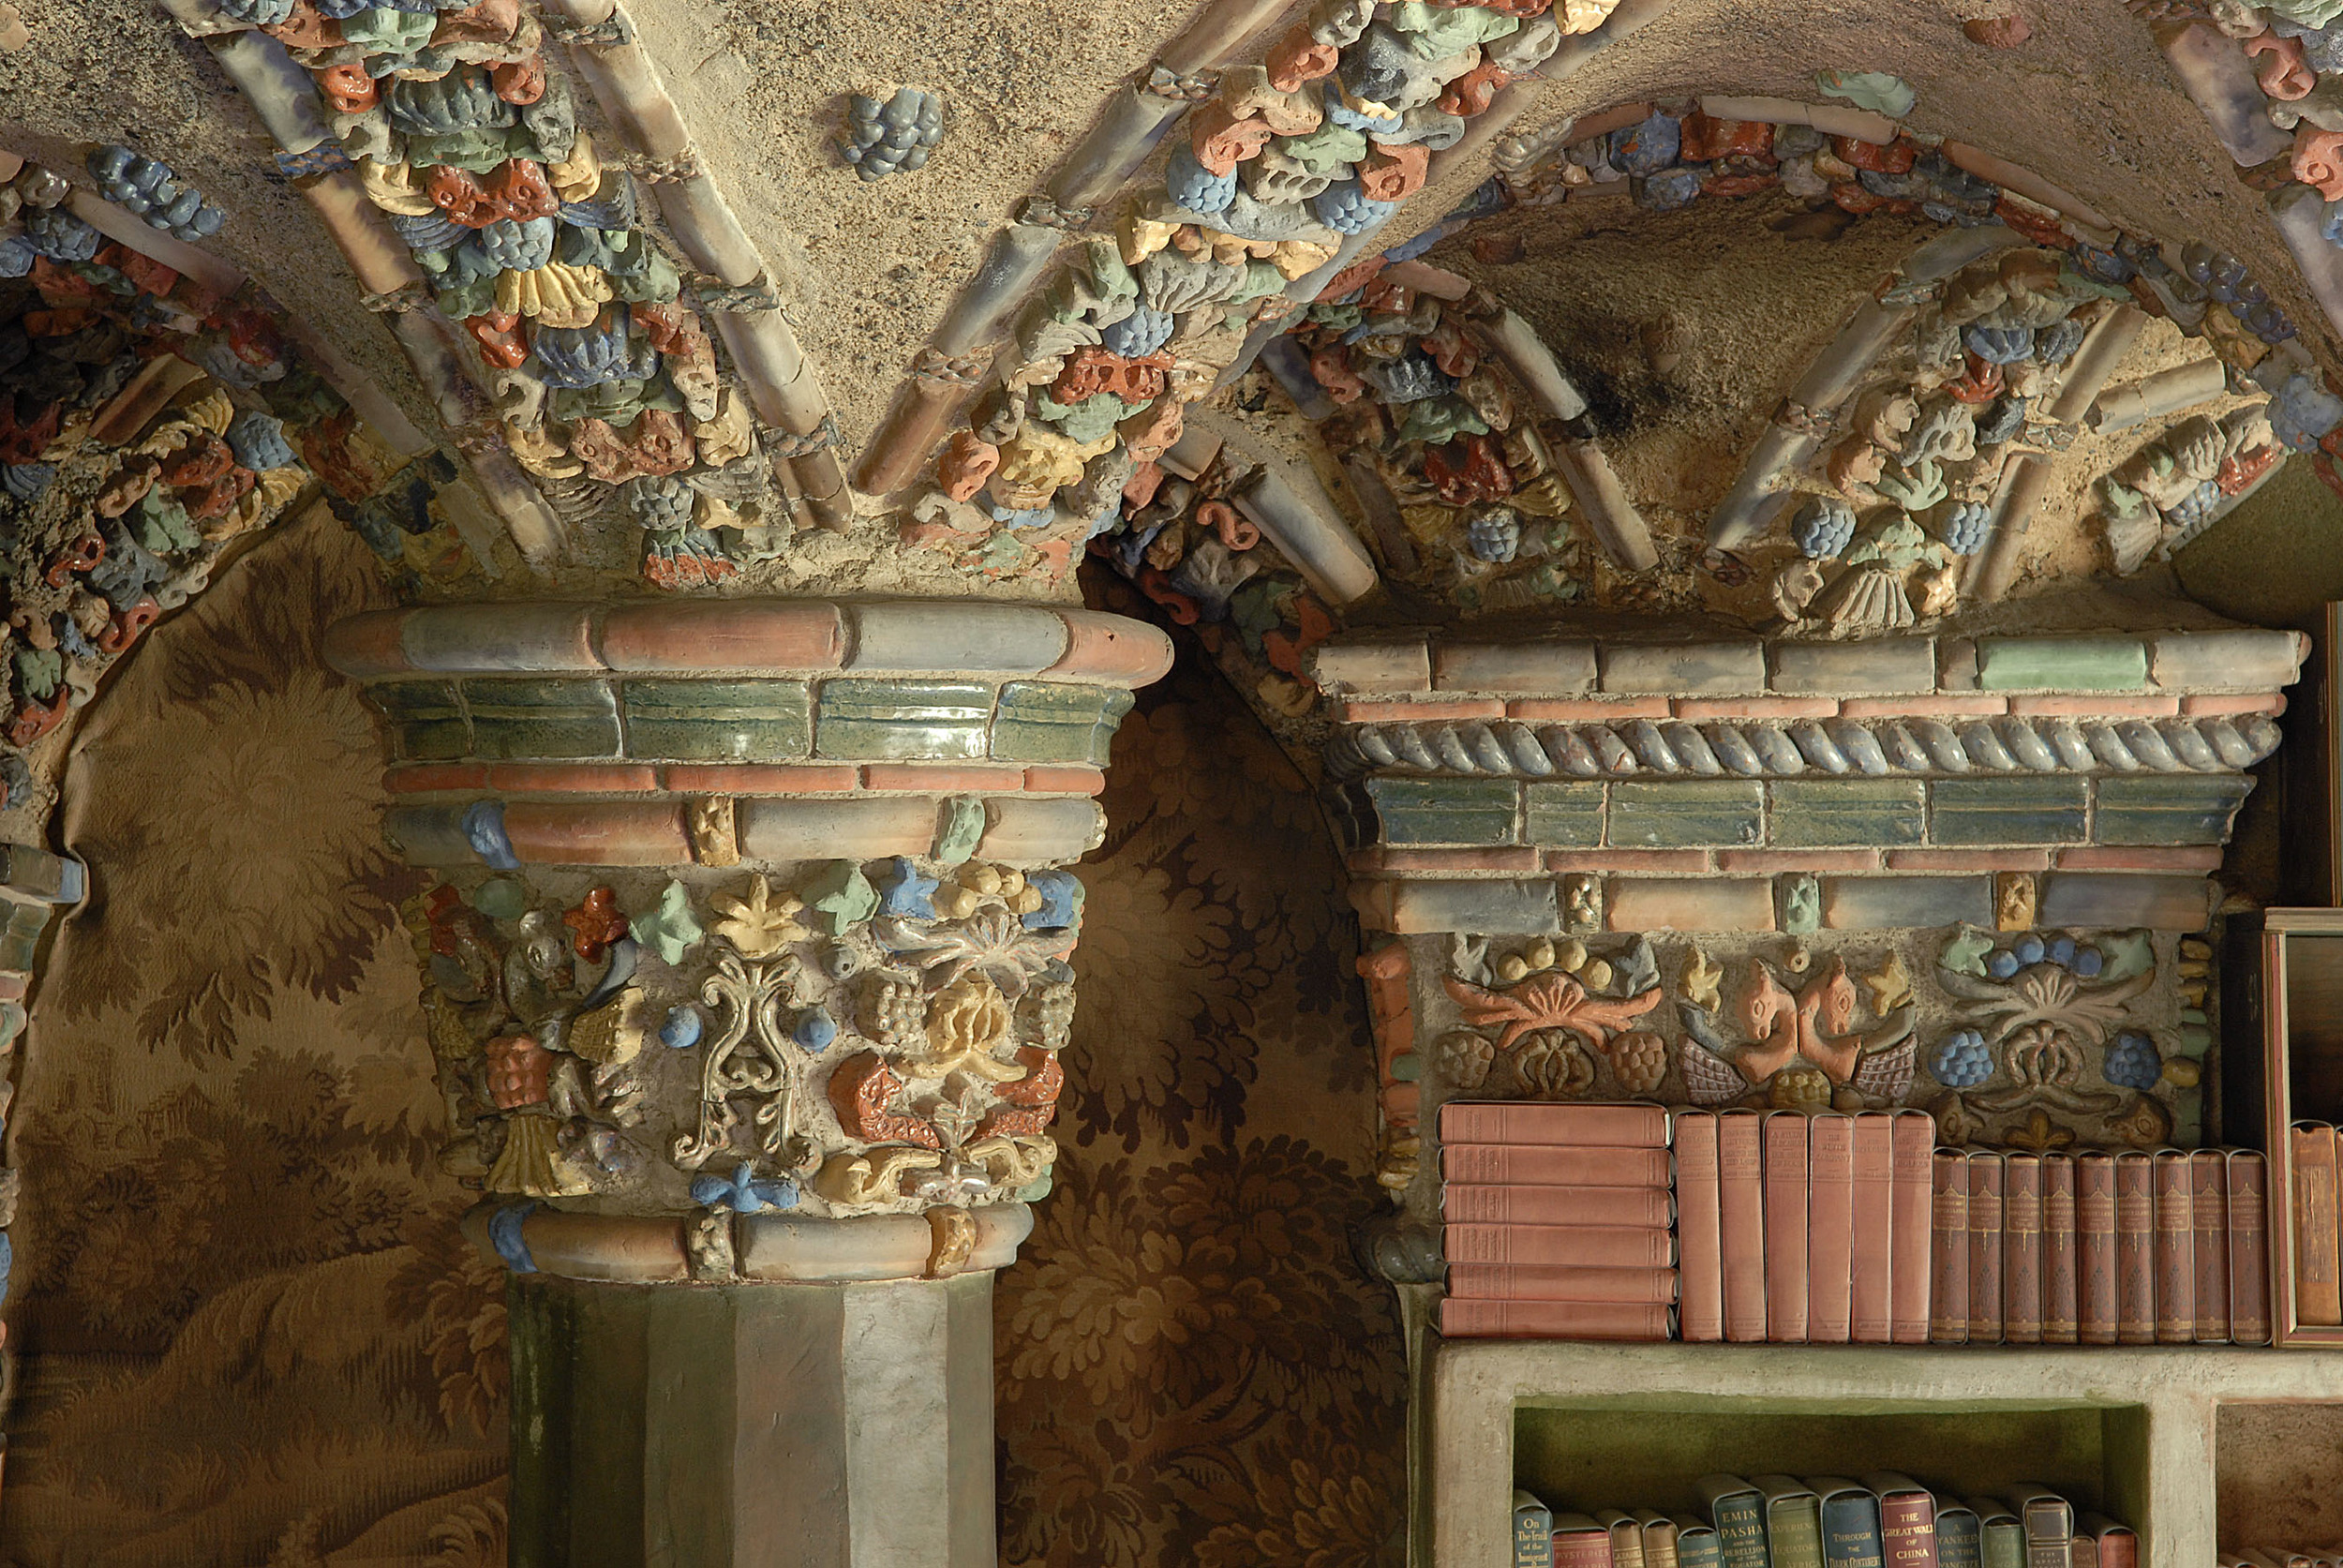 Figure 5: The library at Fonthill, decorated with tiles made in the Moravian Pottery and Tile Works. Photograph by Jack Carnell.